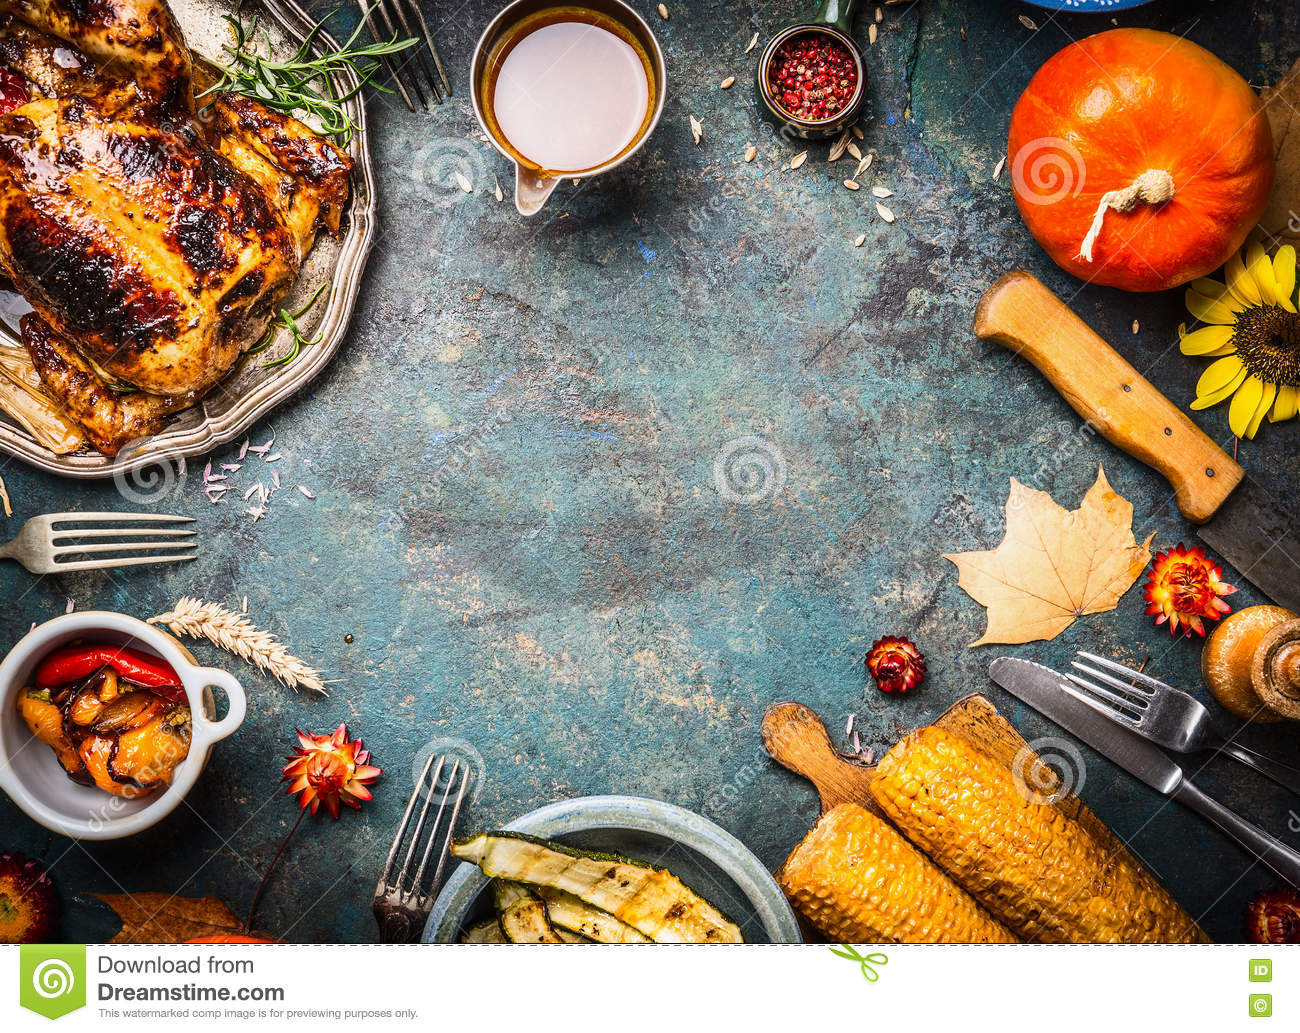 Download Roasted Whole Chicken Or Turkey With Sauce And Grilled Autumn Vegetables: Corn,pumpkin ,paprika On Dark Rustic Background, Top Vie Stock Image - Image of feast, fall: 74685235